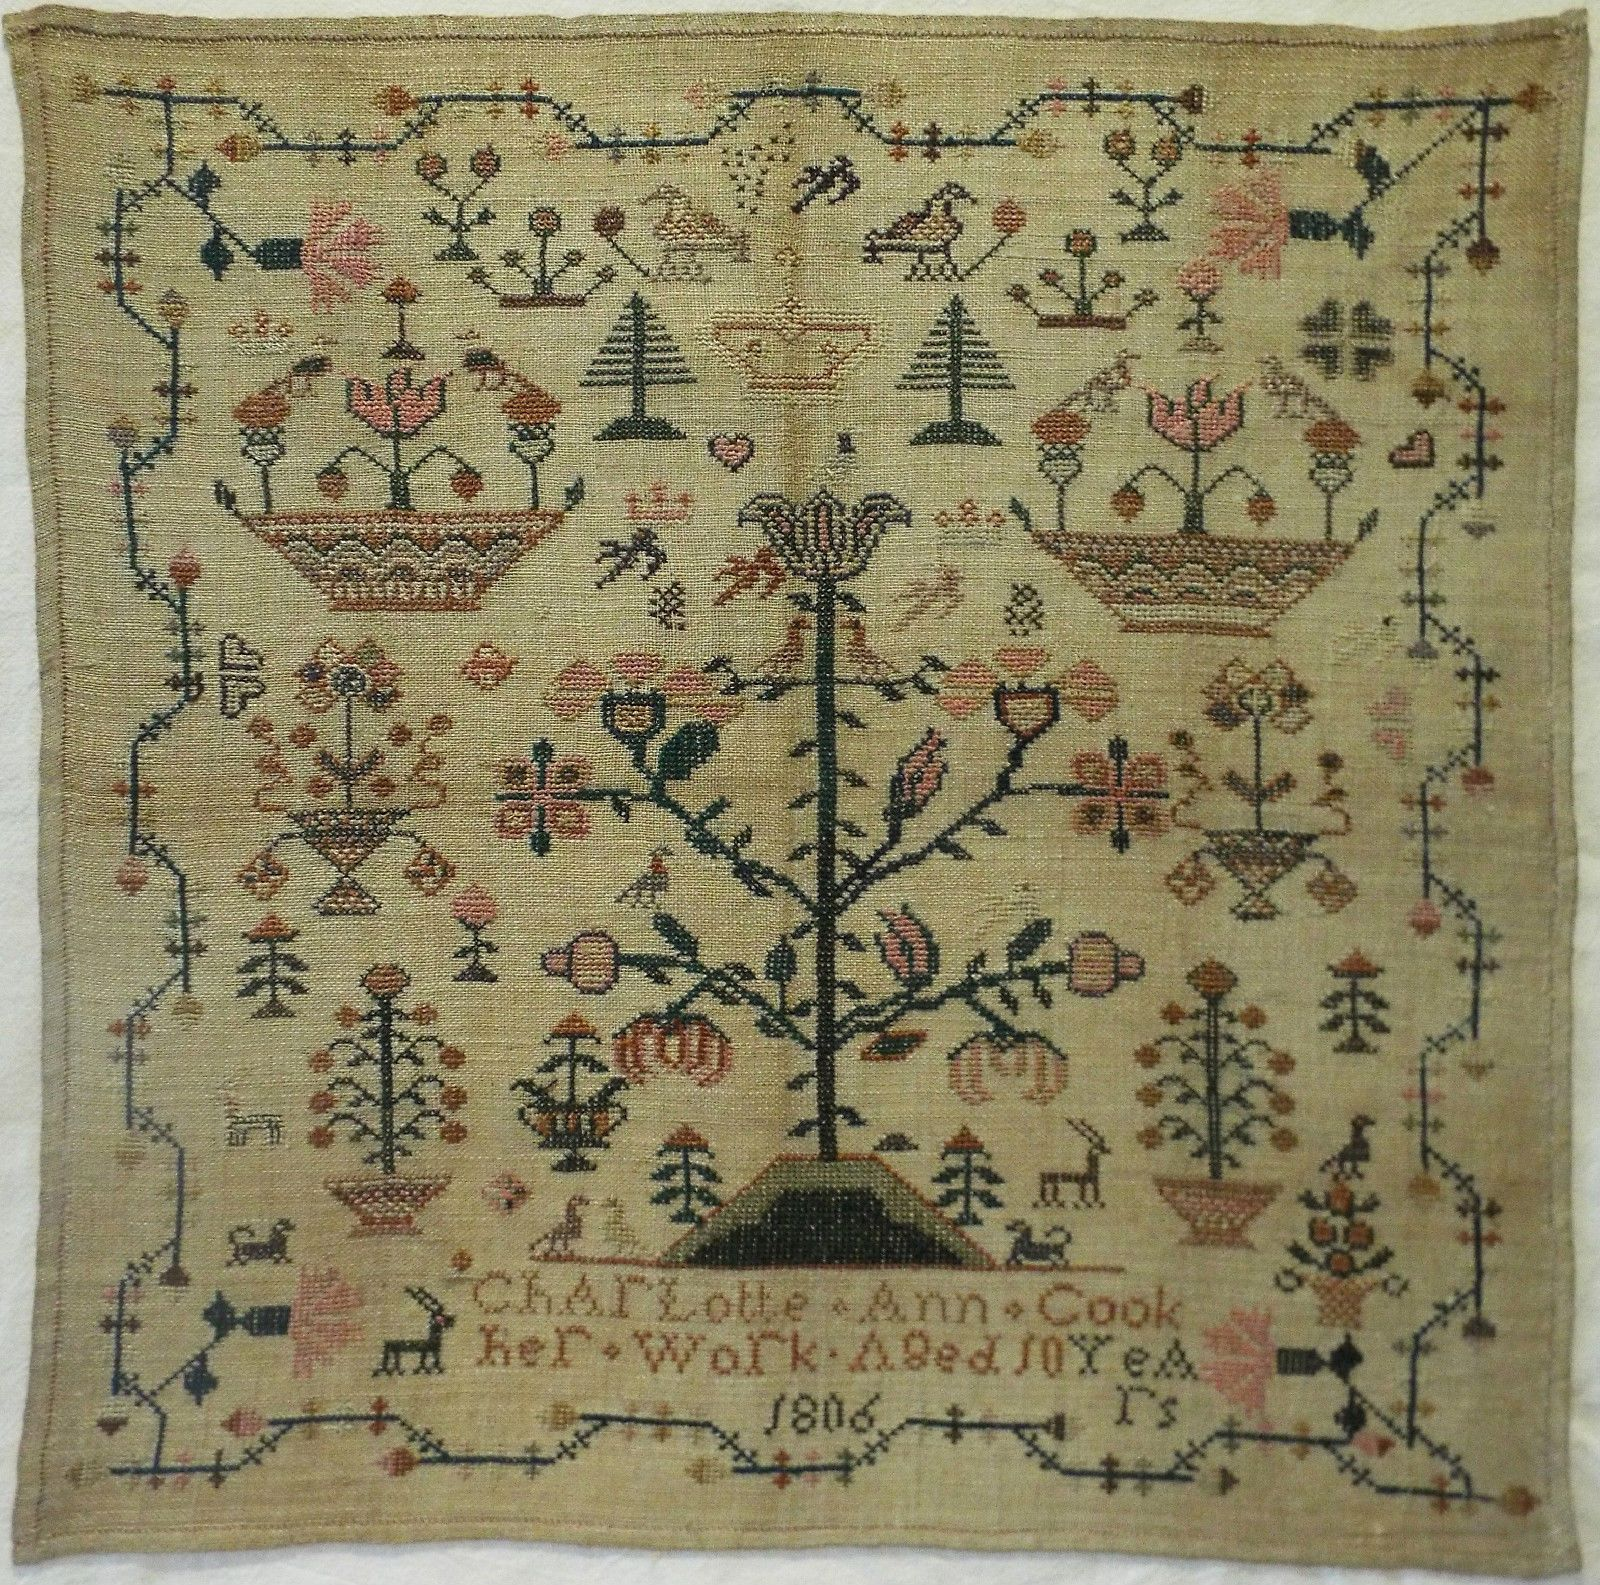 Early 19th Century Floral Motif Sampler by Charlotte Ann Cook Aged 10 1806 | eBay